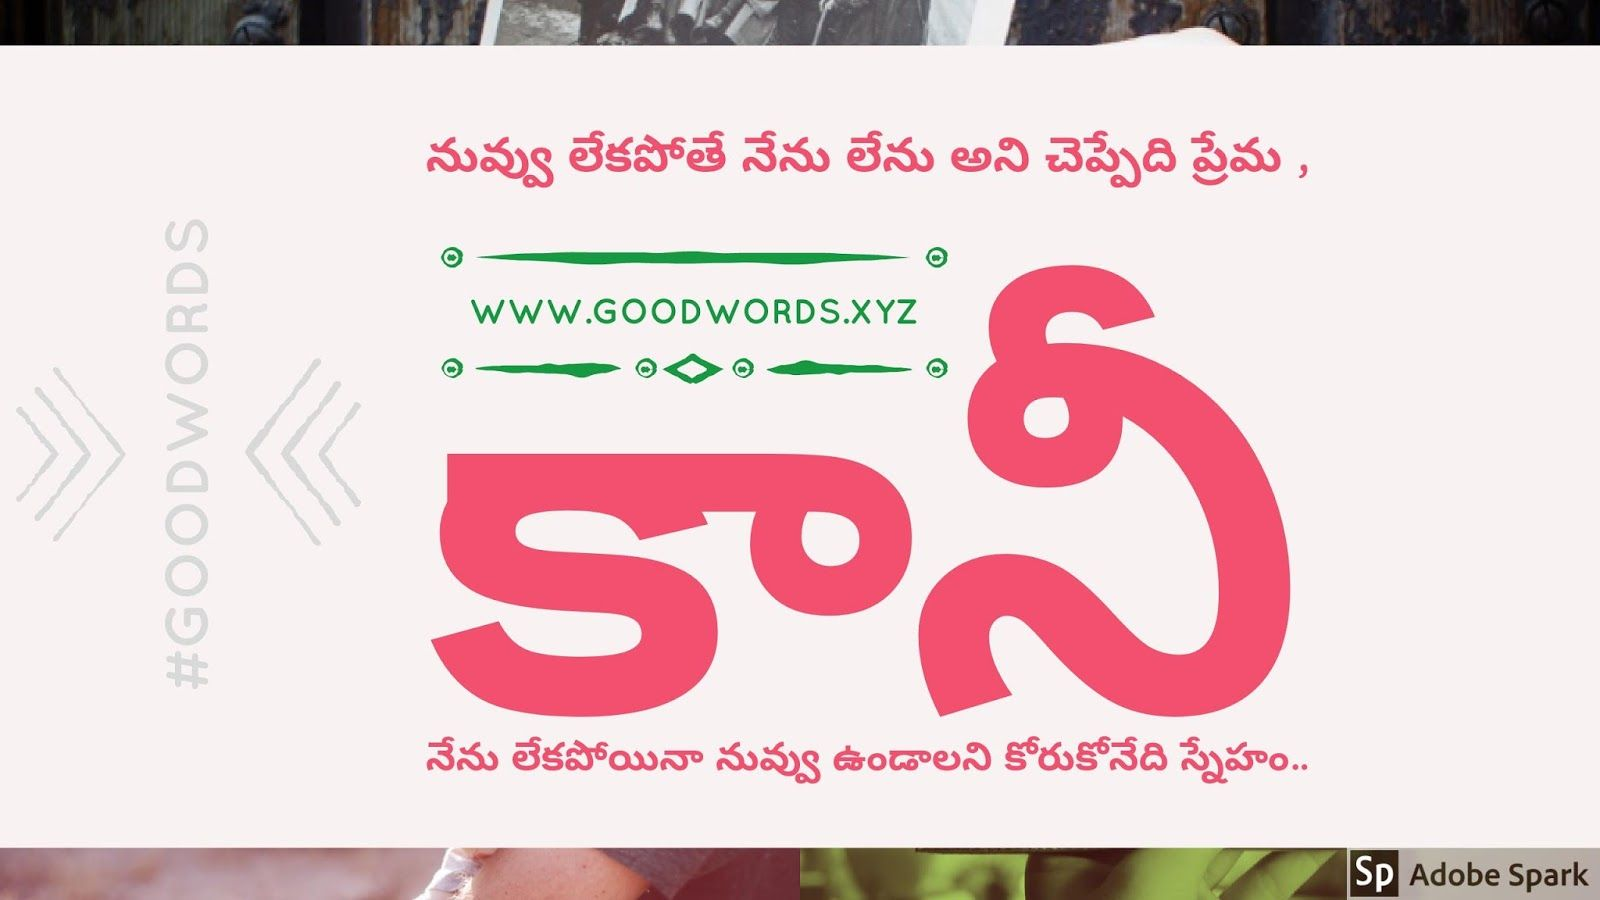 Telugu Great Quotes Explains About Differences Between Love And